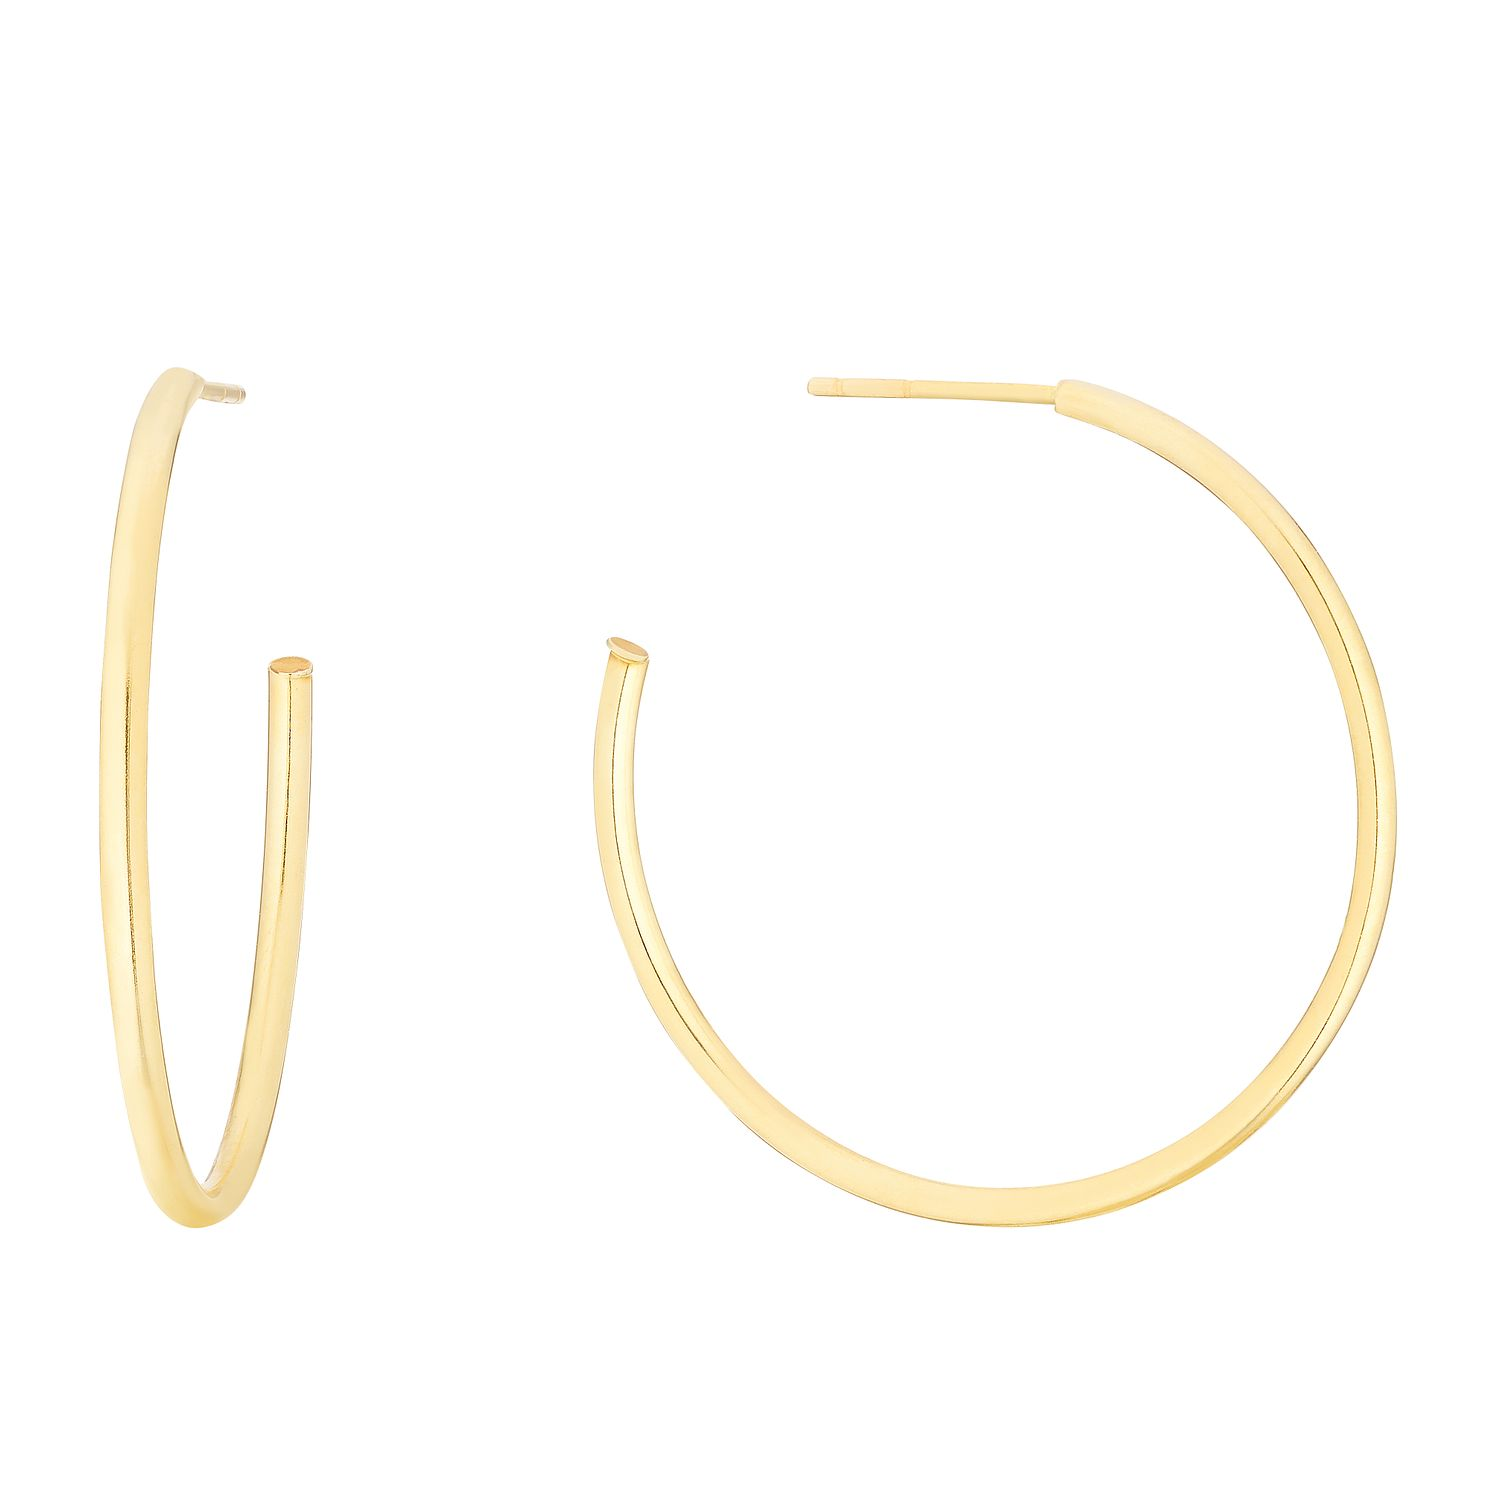 9ct Yellow Gold 27mm Skinny Hoop Earrings - Product number 3140237